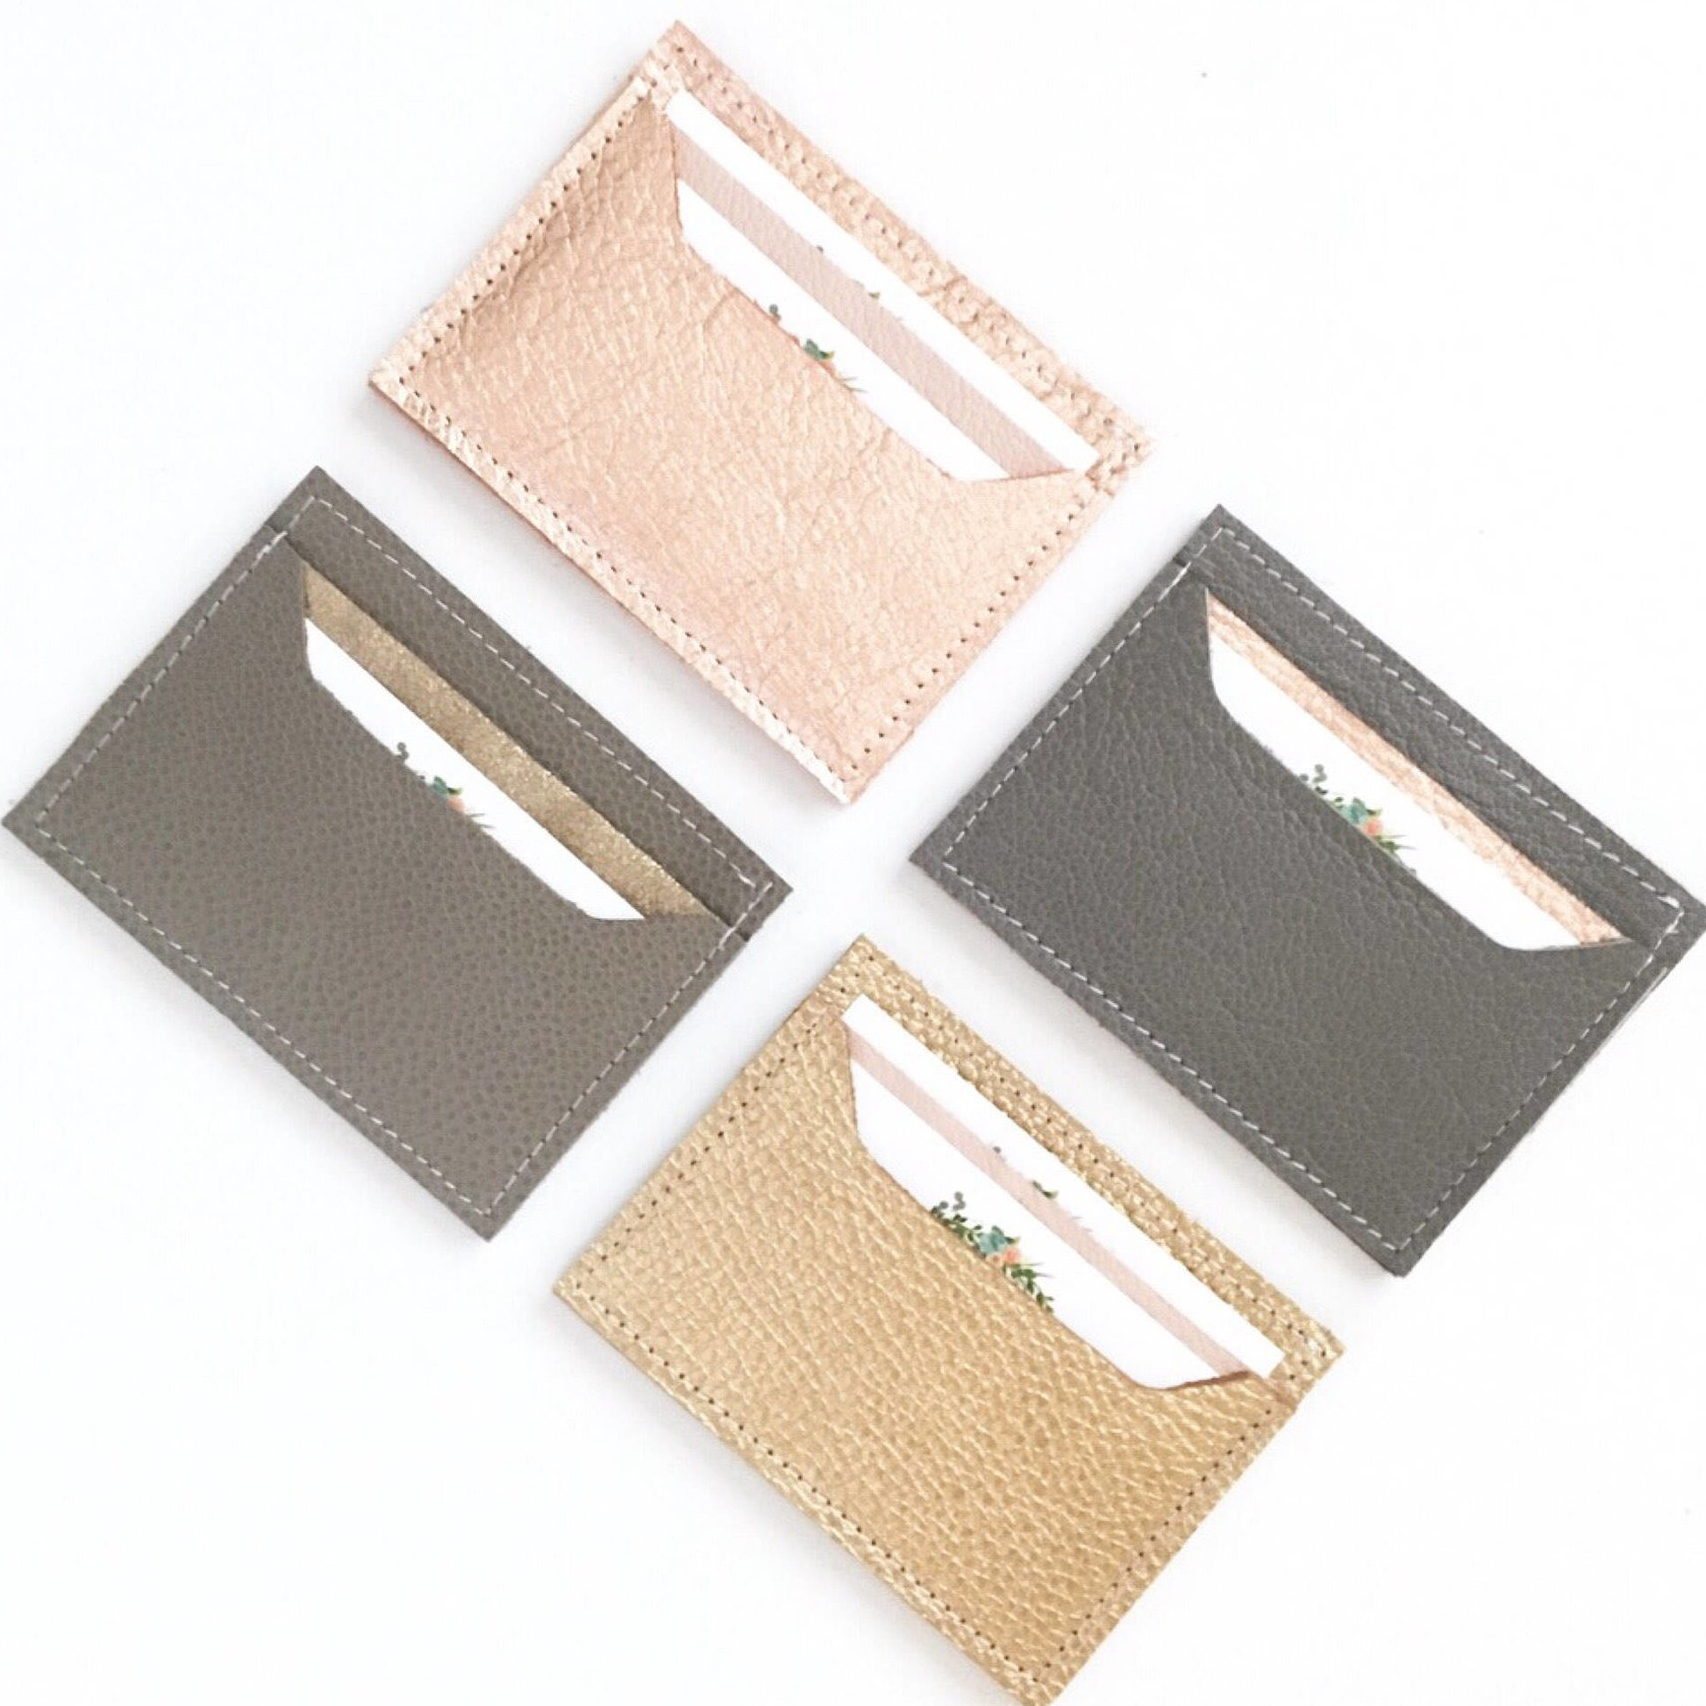 Leather Card Case - Baby Mama Sew Shop